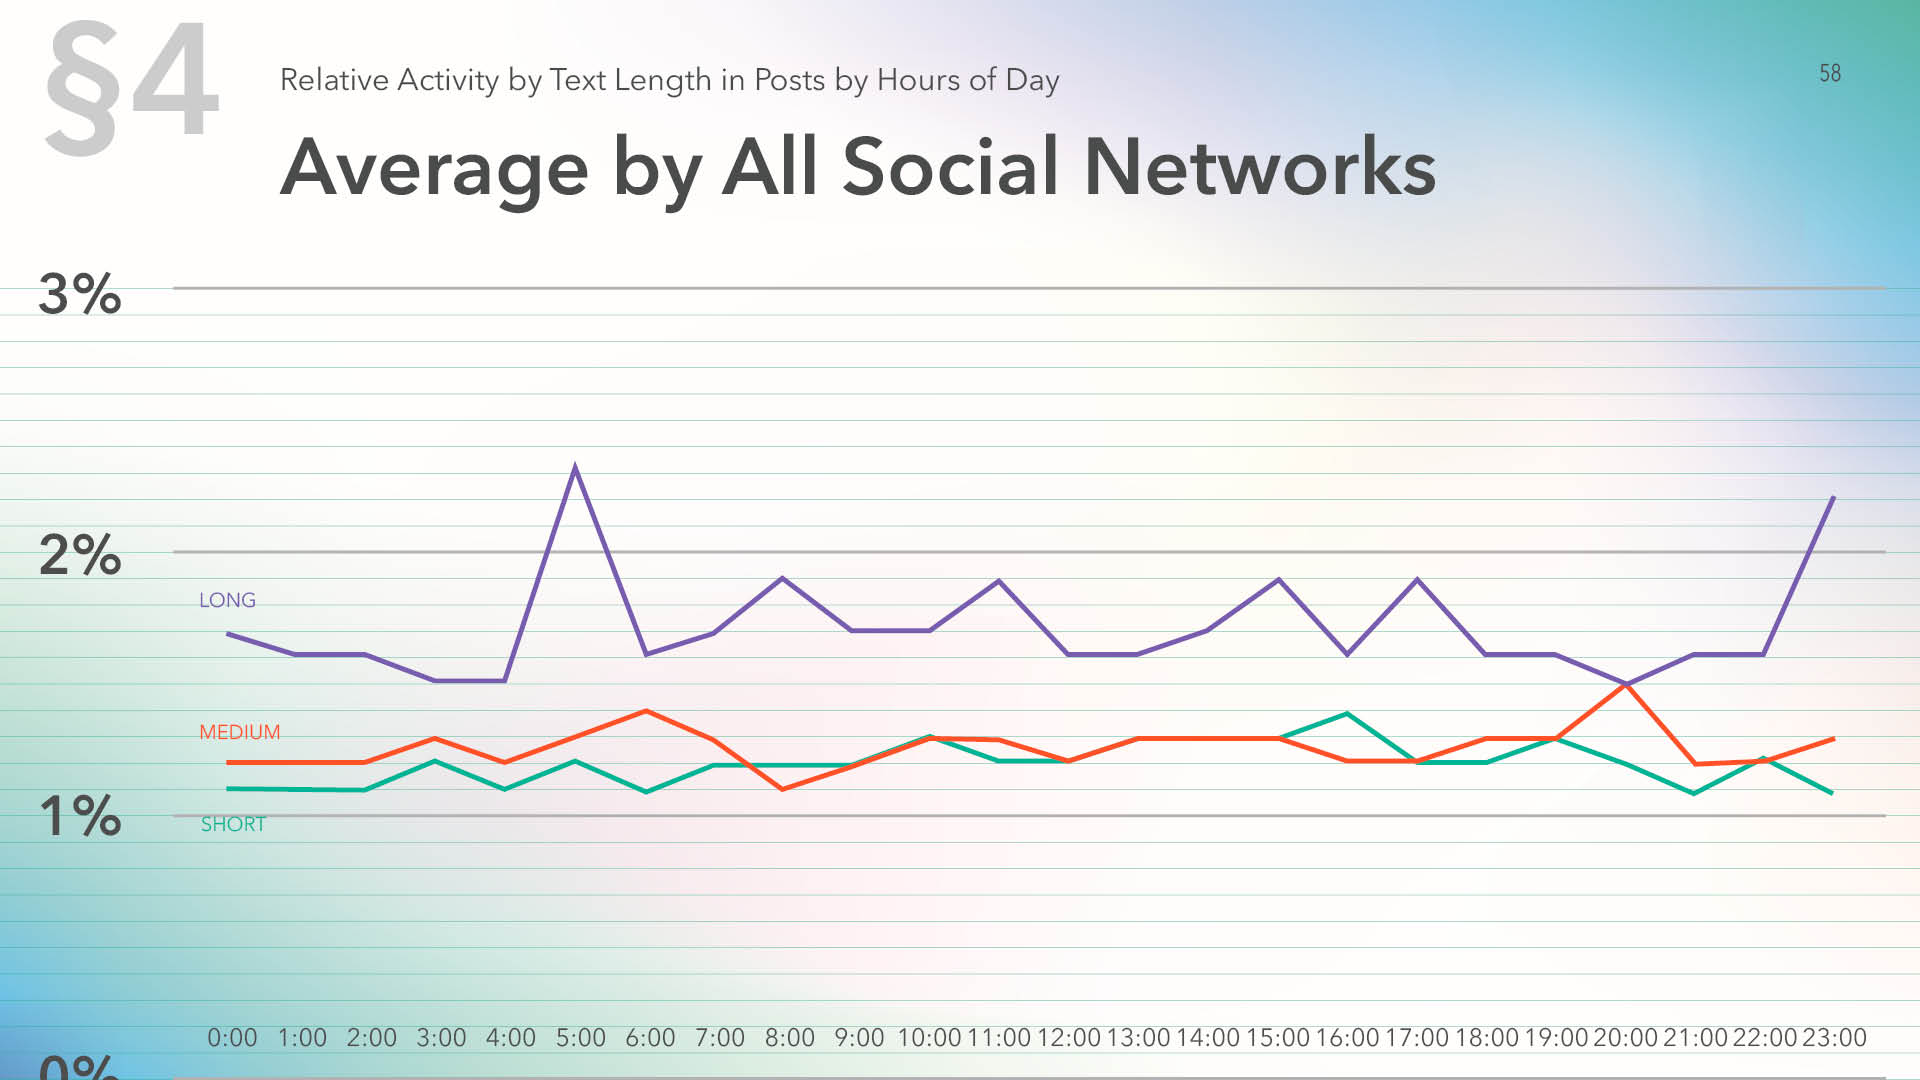 Relative activity by all Social networks by text length in posts by hours of day, 2019